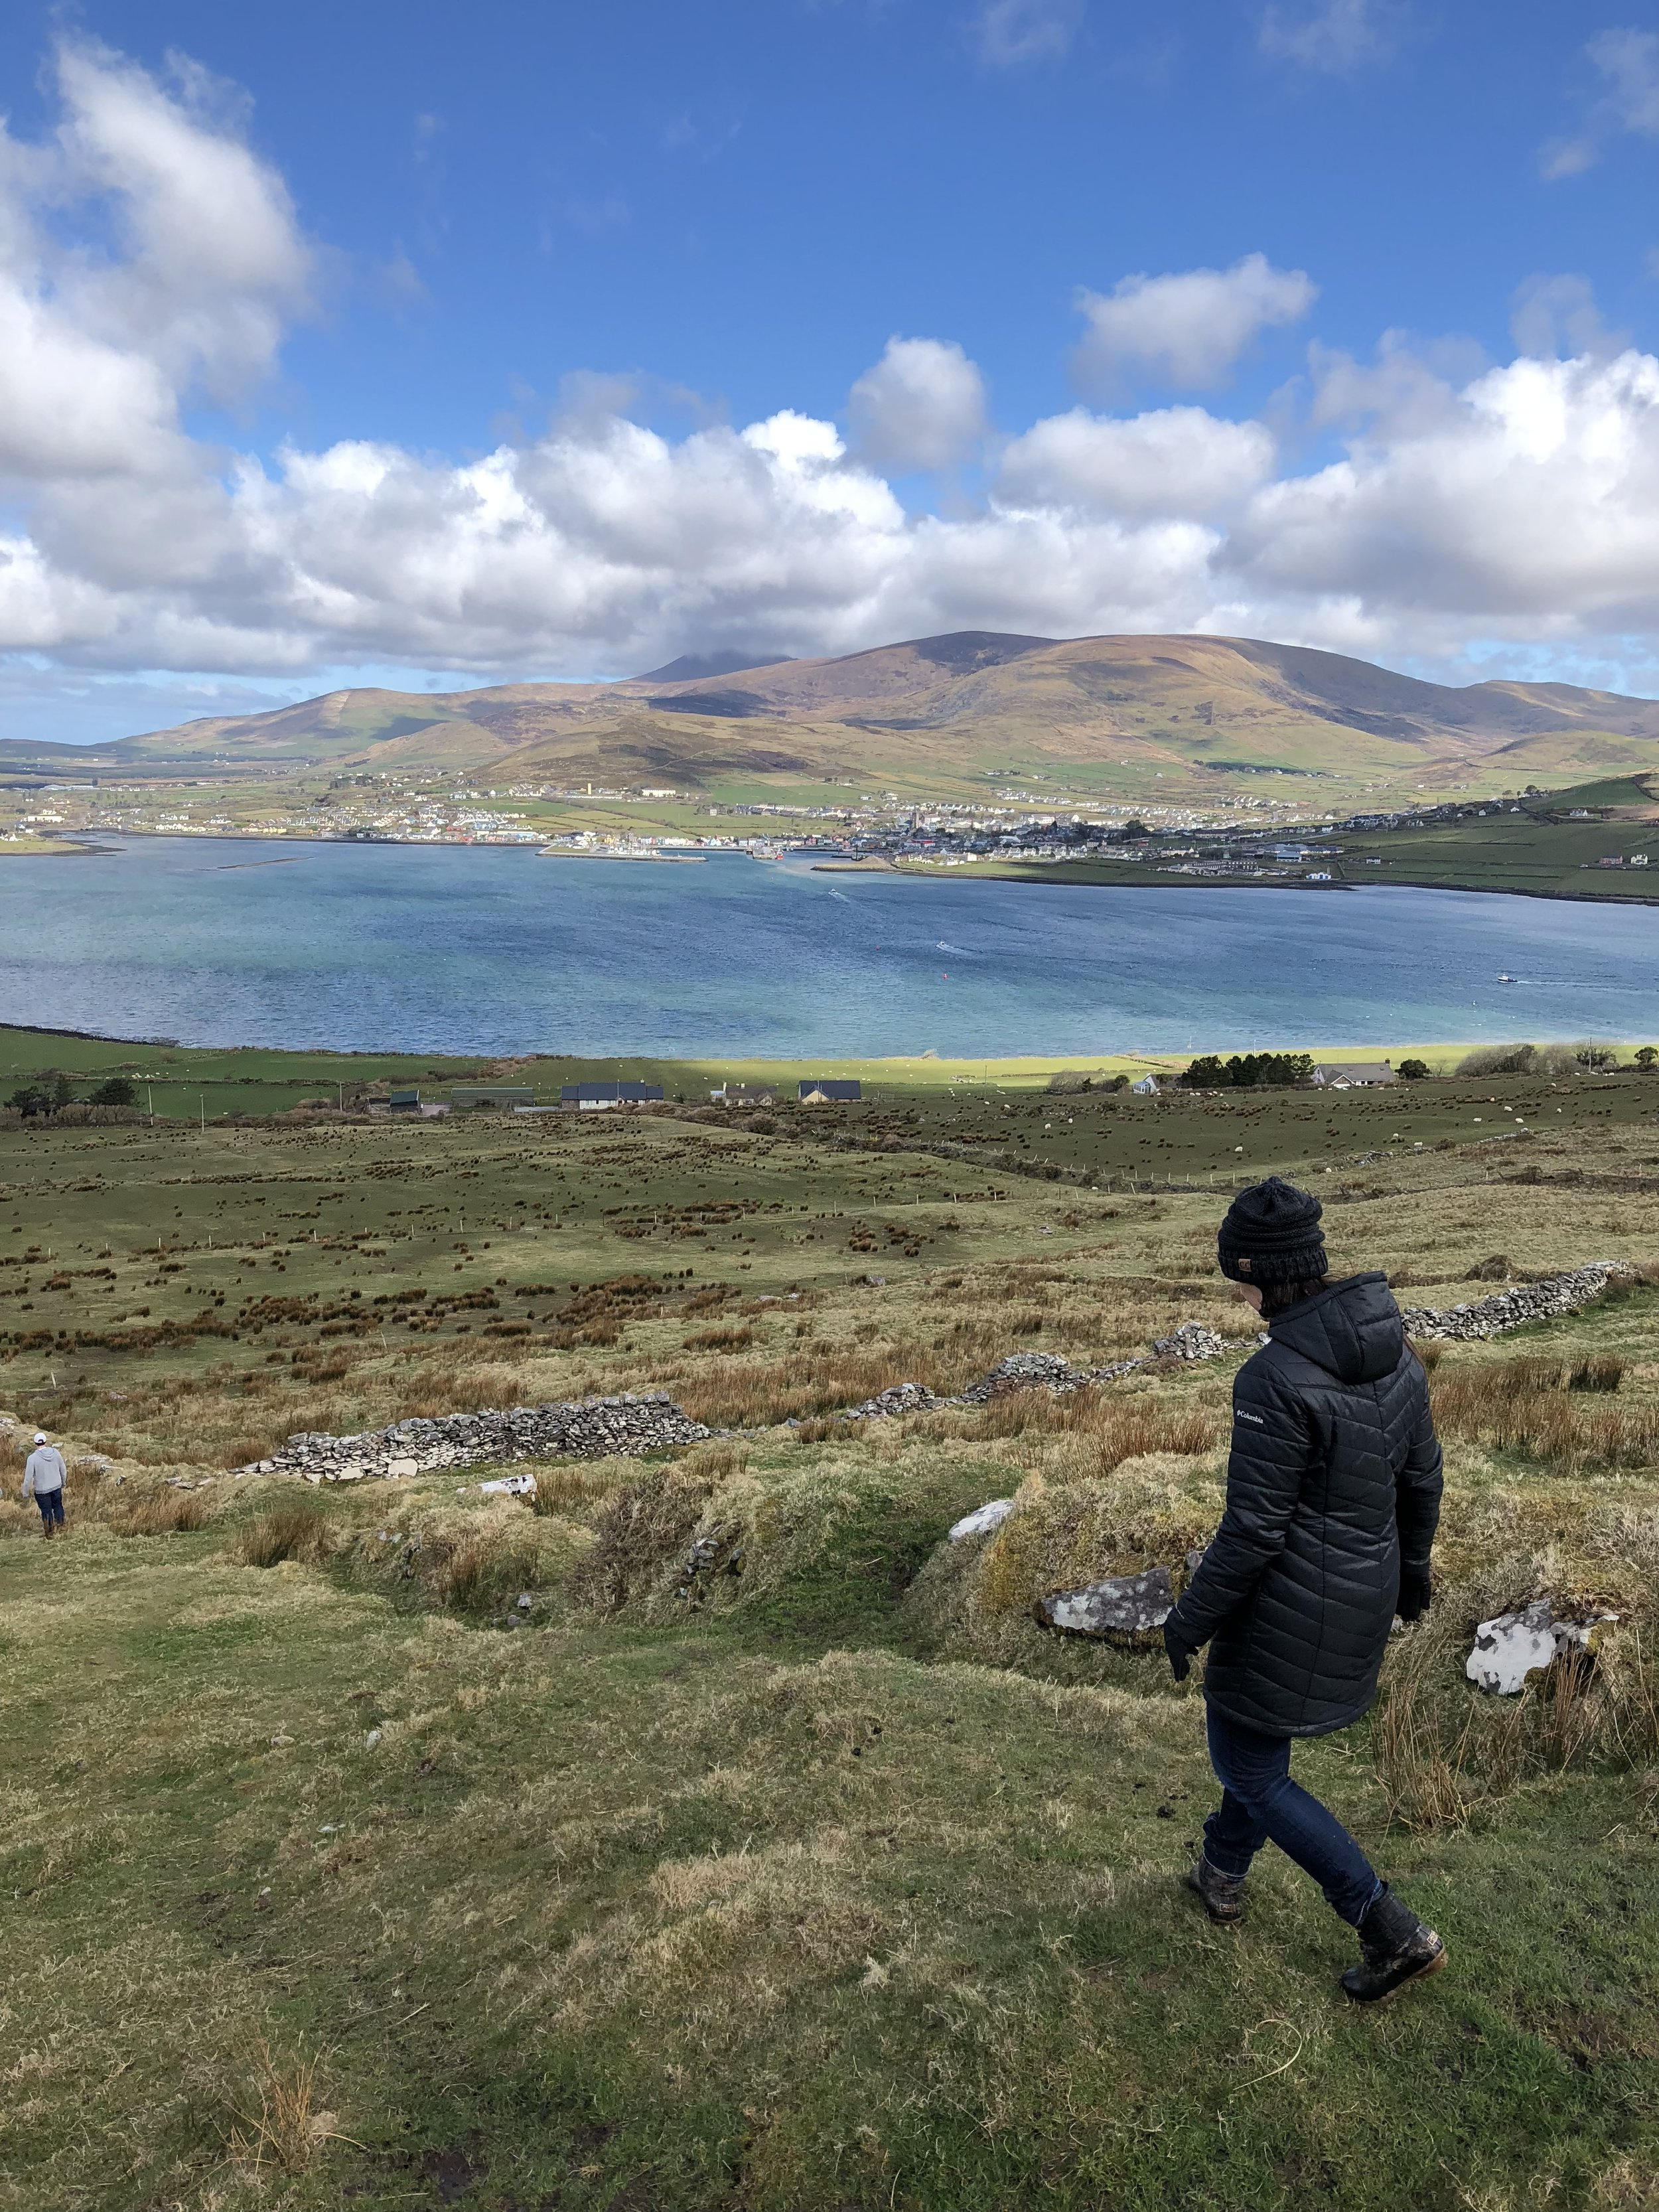 Traveling is more than checking off the sites. This hike through a sheep pasture on the Dingle Peninsula was the most memorable time we had in Ireland. The view from the top was amazing, the hike was even better, and our conversation with the local farmer afterwards made it amazing!